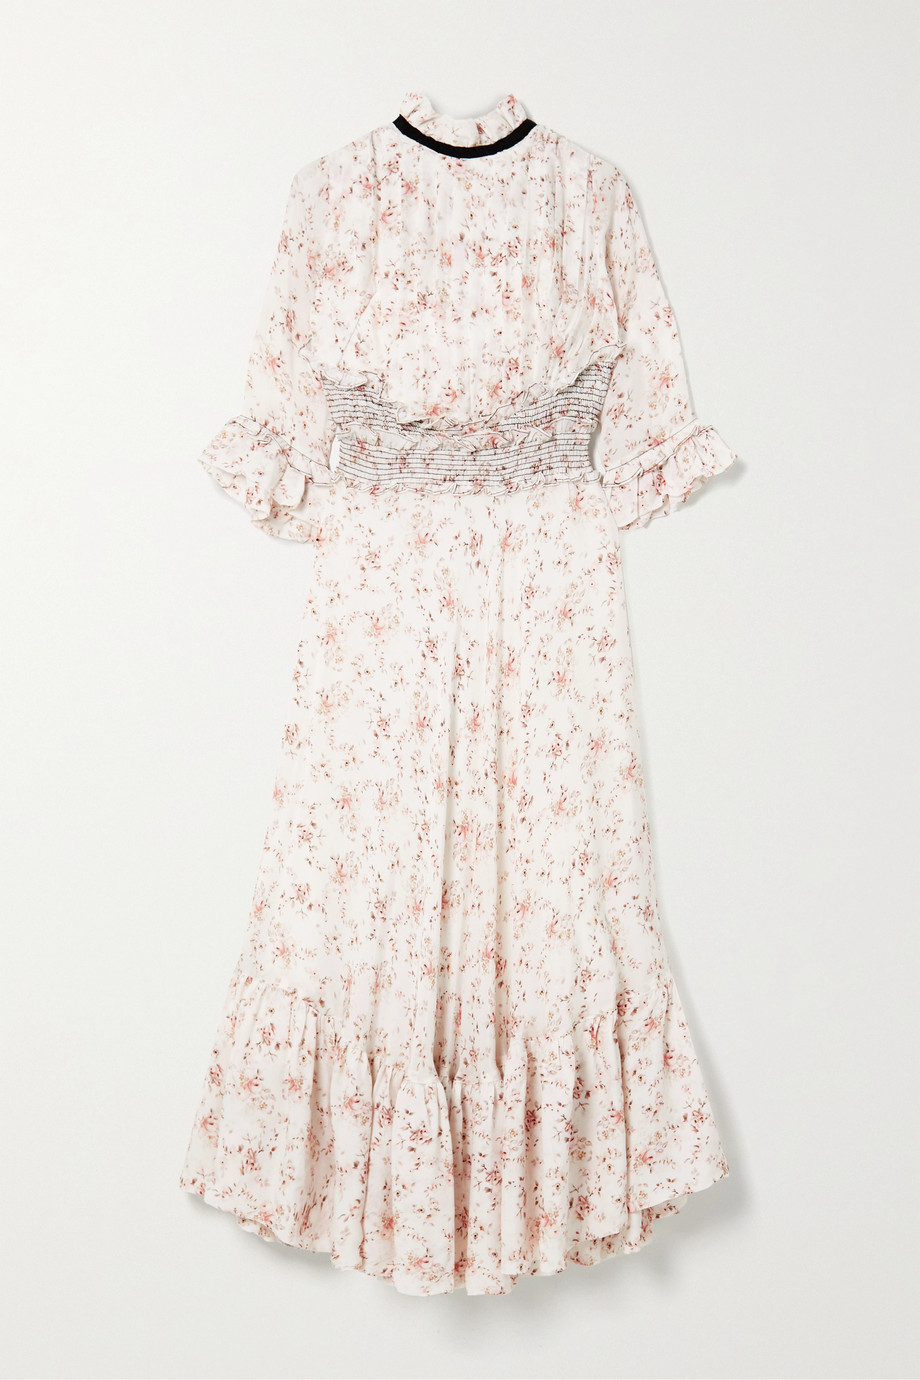 Lug Von Siga Gabriella ruffled shirred floral-print cupro midi dress